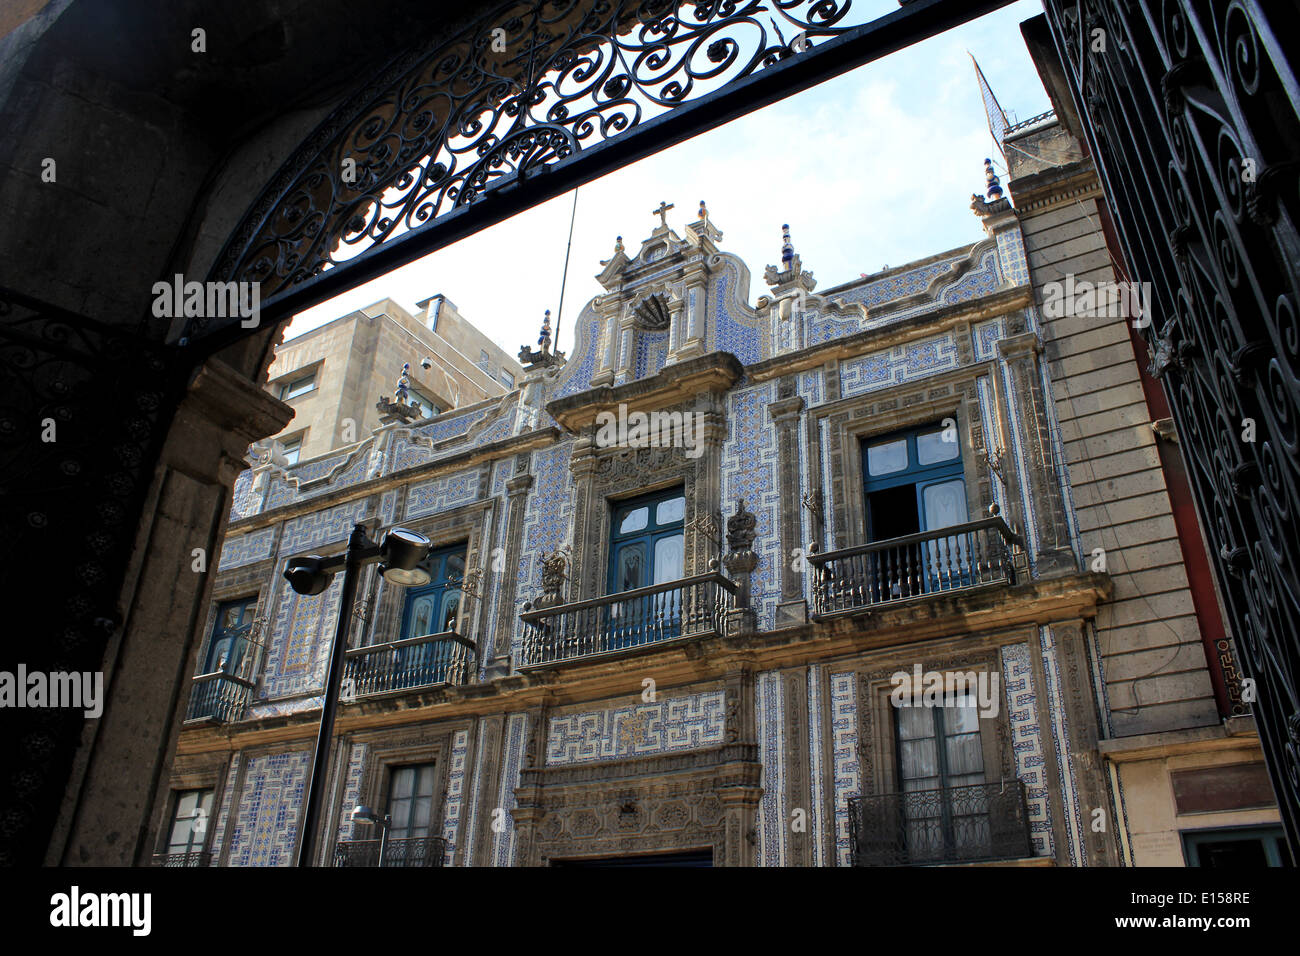 Looking towards the Casa de los Azulejos (House of Tiles) from across the street, Centro Historico, Mexico City - Stock Image